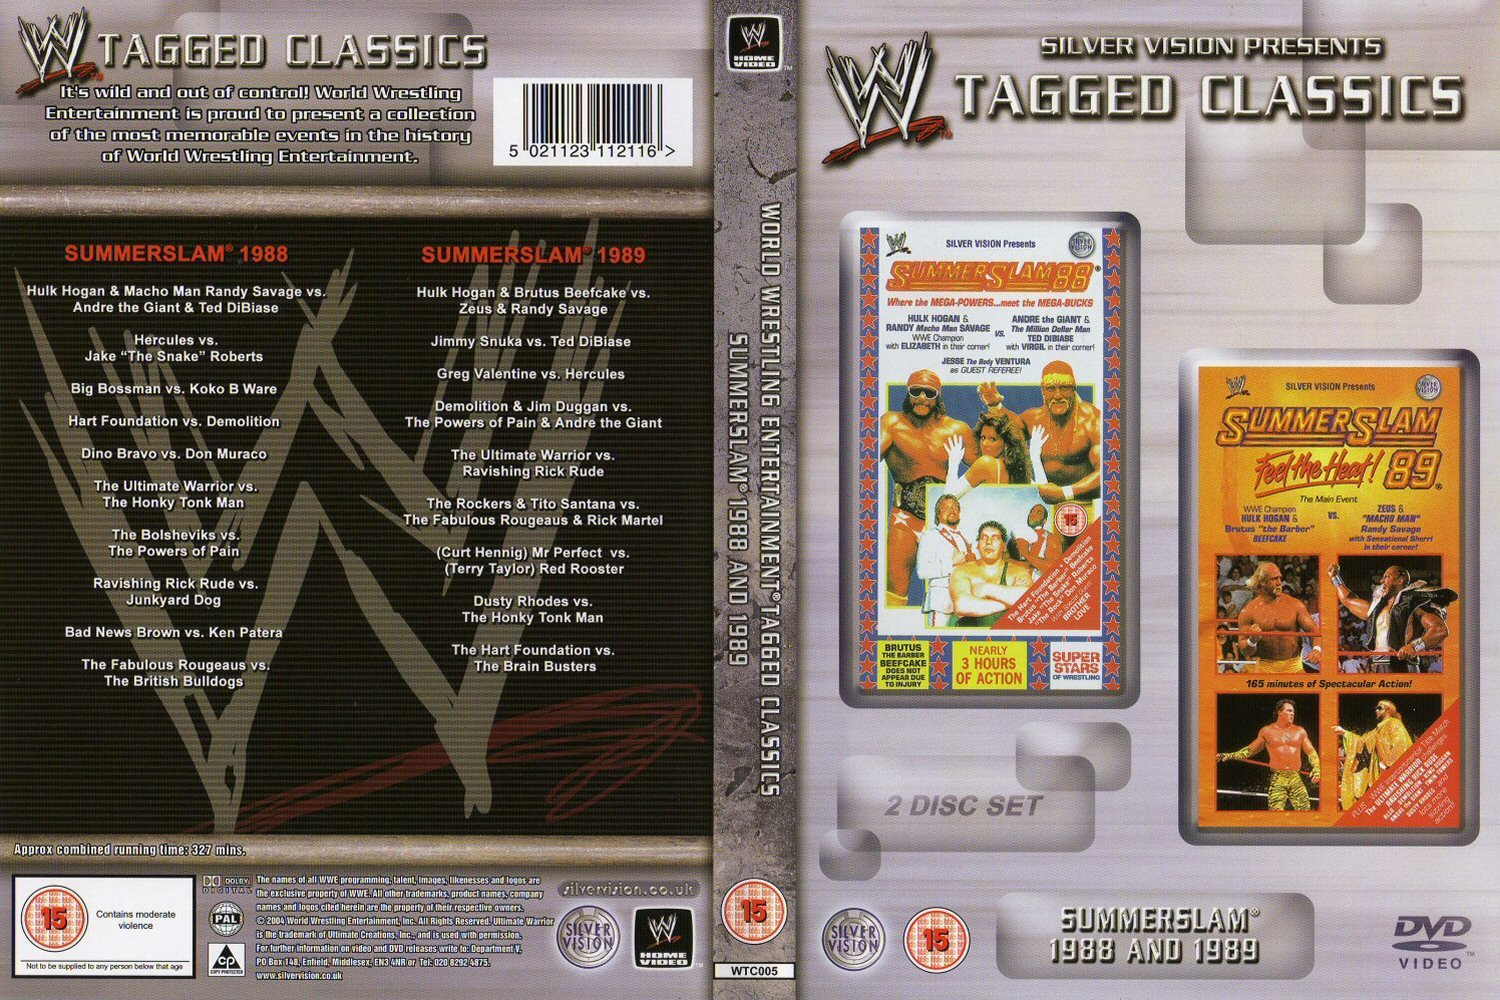 Wwe_Tagged_Classics_Summerslam_88-89_Uk-front